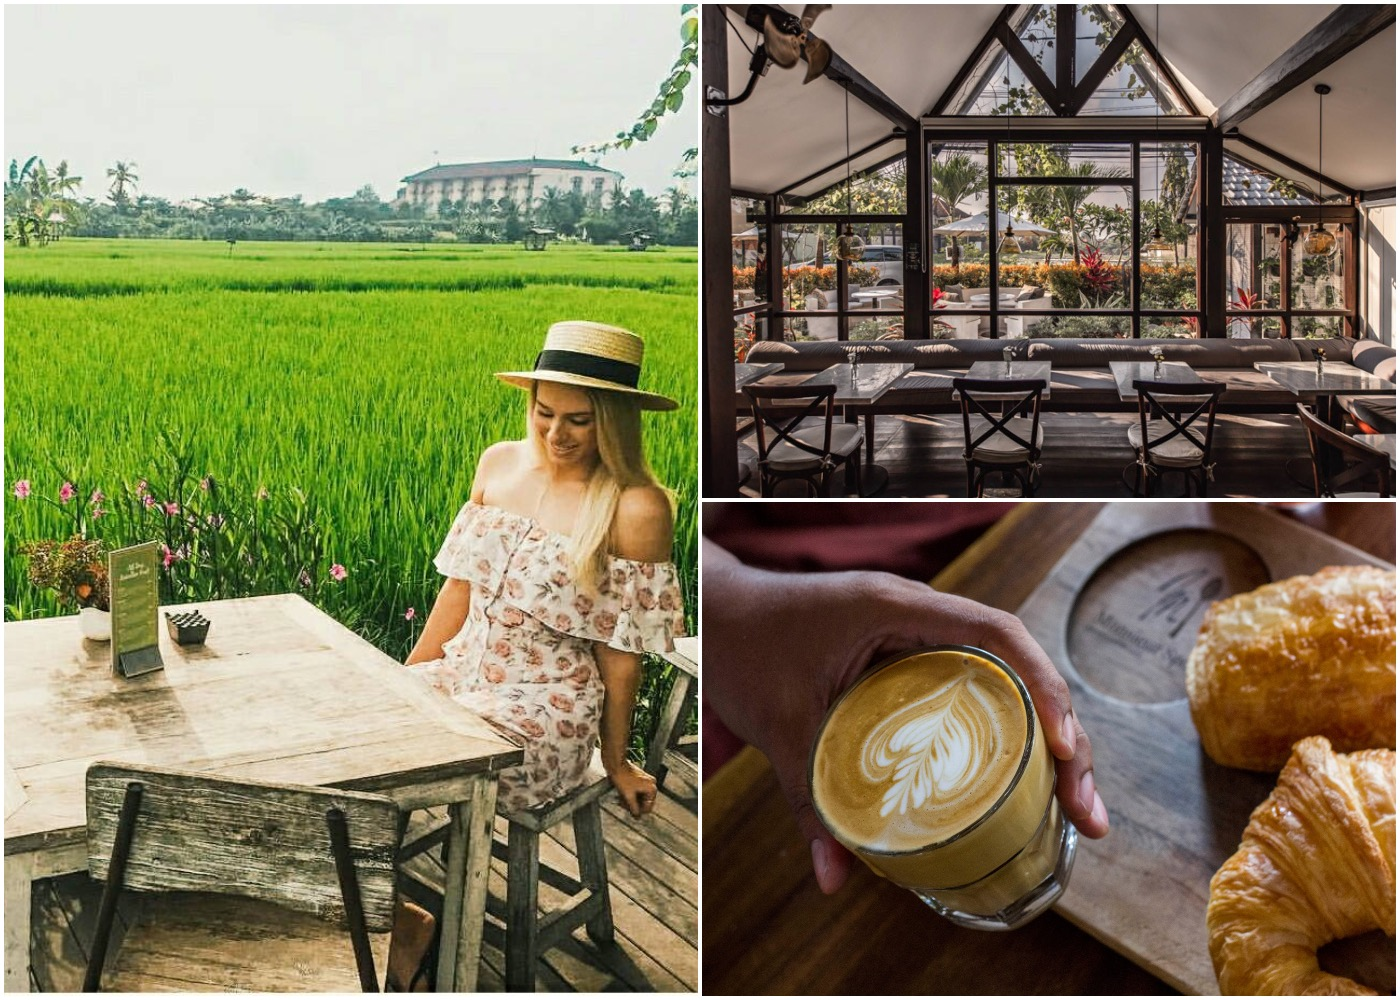 Neighbourhood Guide - where to stay, eat & play in Umalas, Bali, Indonesia